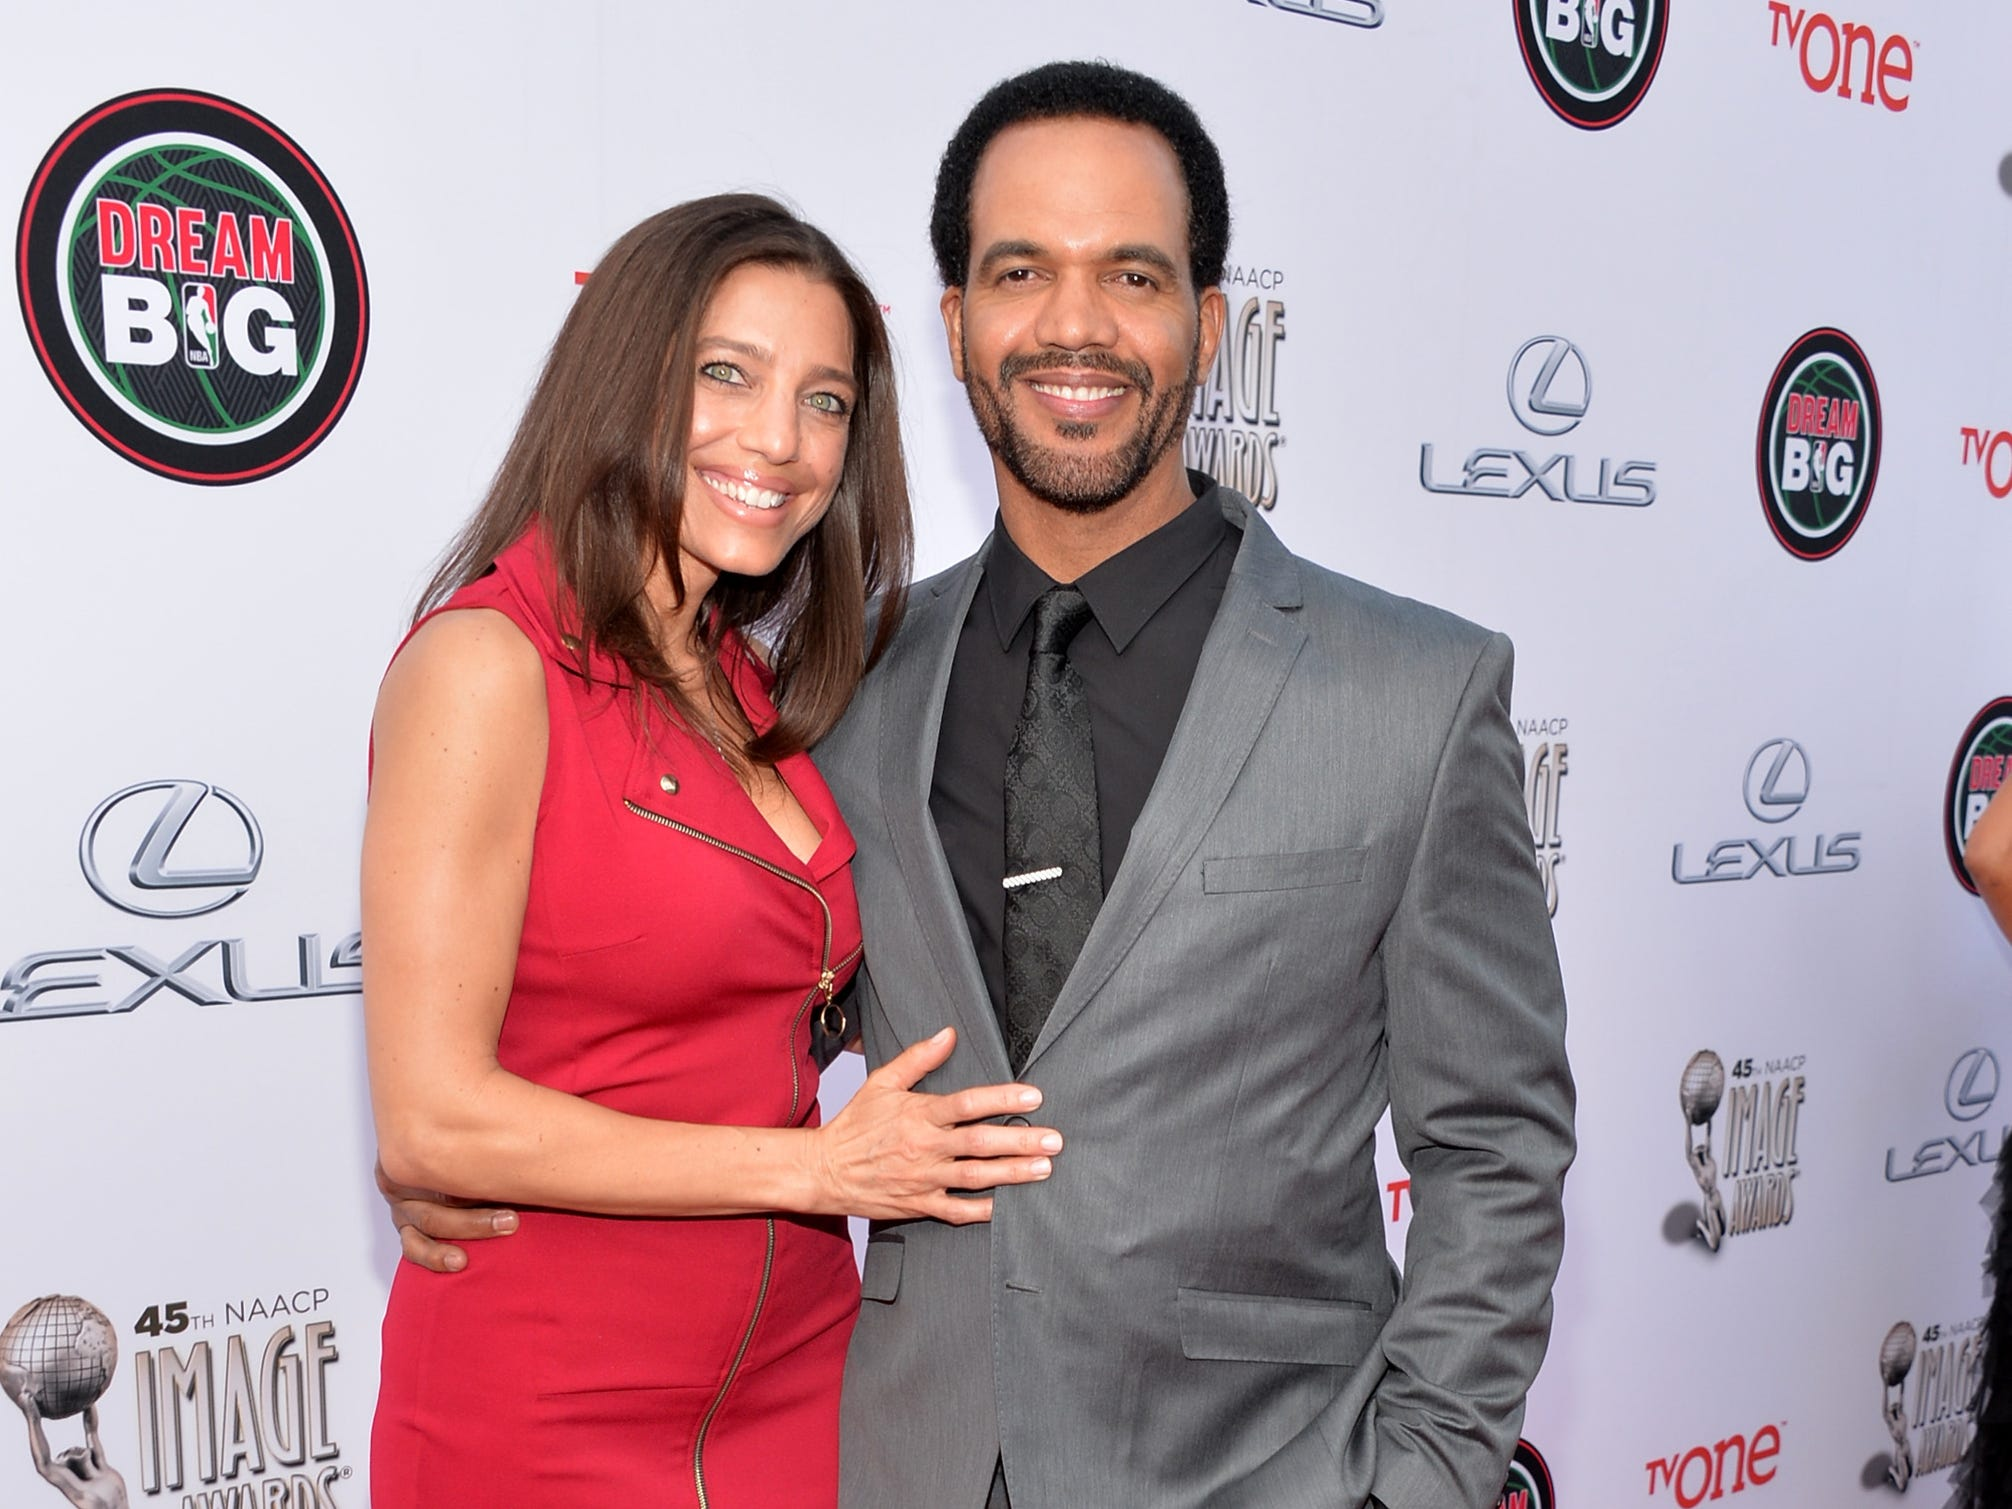 Kristoff St. John and Dana Derrick attend the 45th NAACP Image Awards presented by TV One at Pasadena Civic Auditorium on Feb. 22, 2014 in Pasadena, Calif.